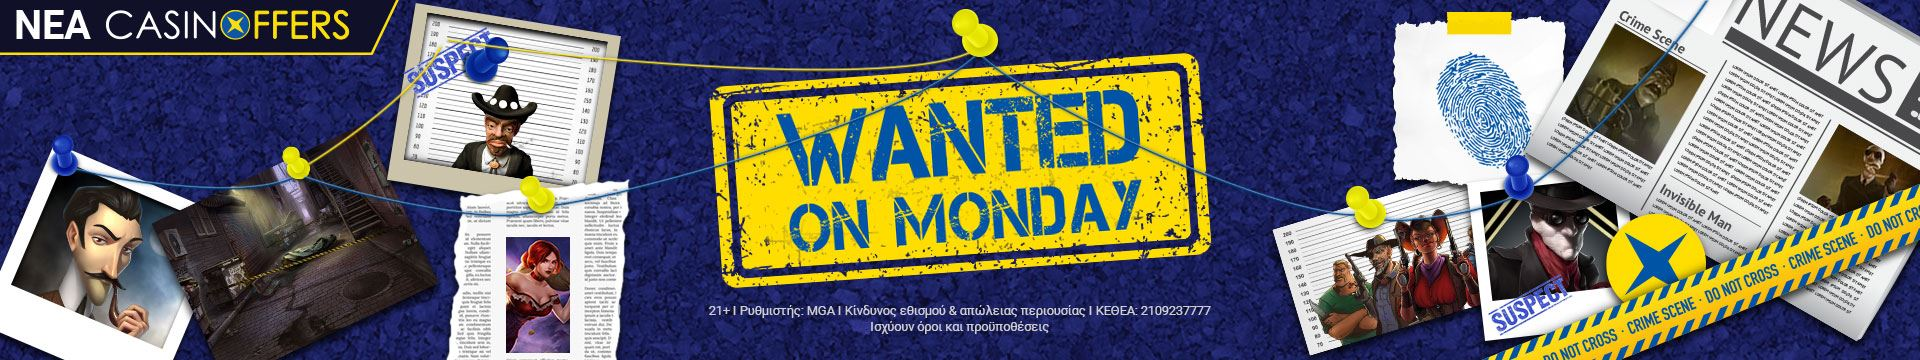 Wanted_on_Monday